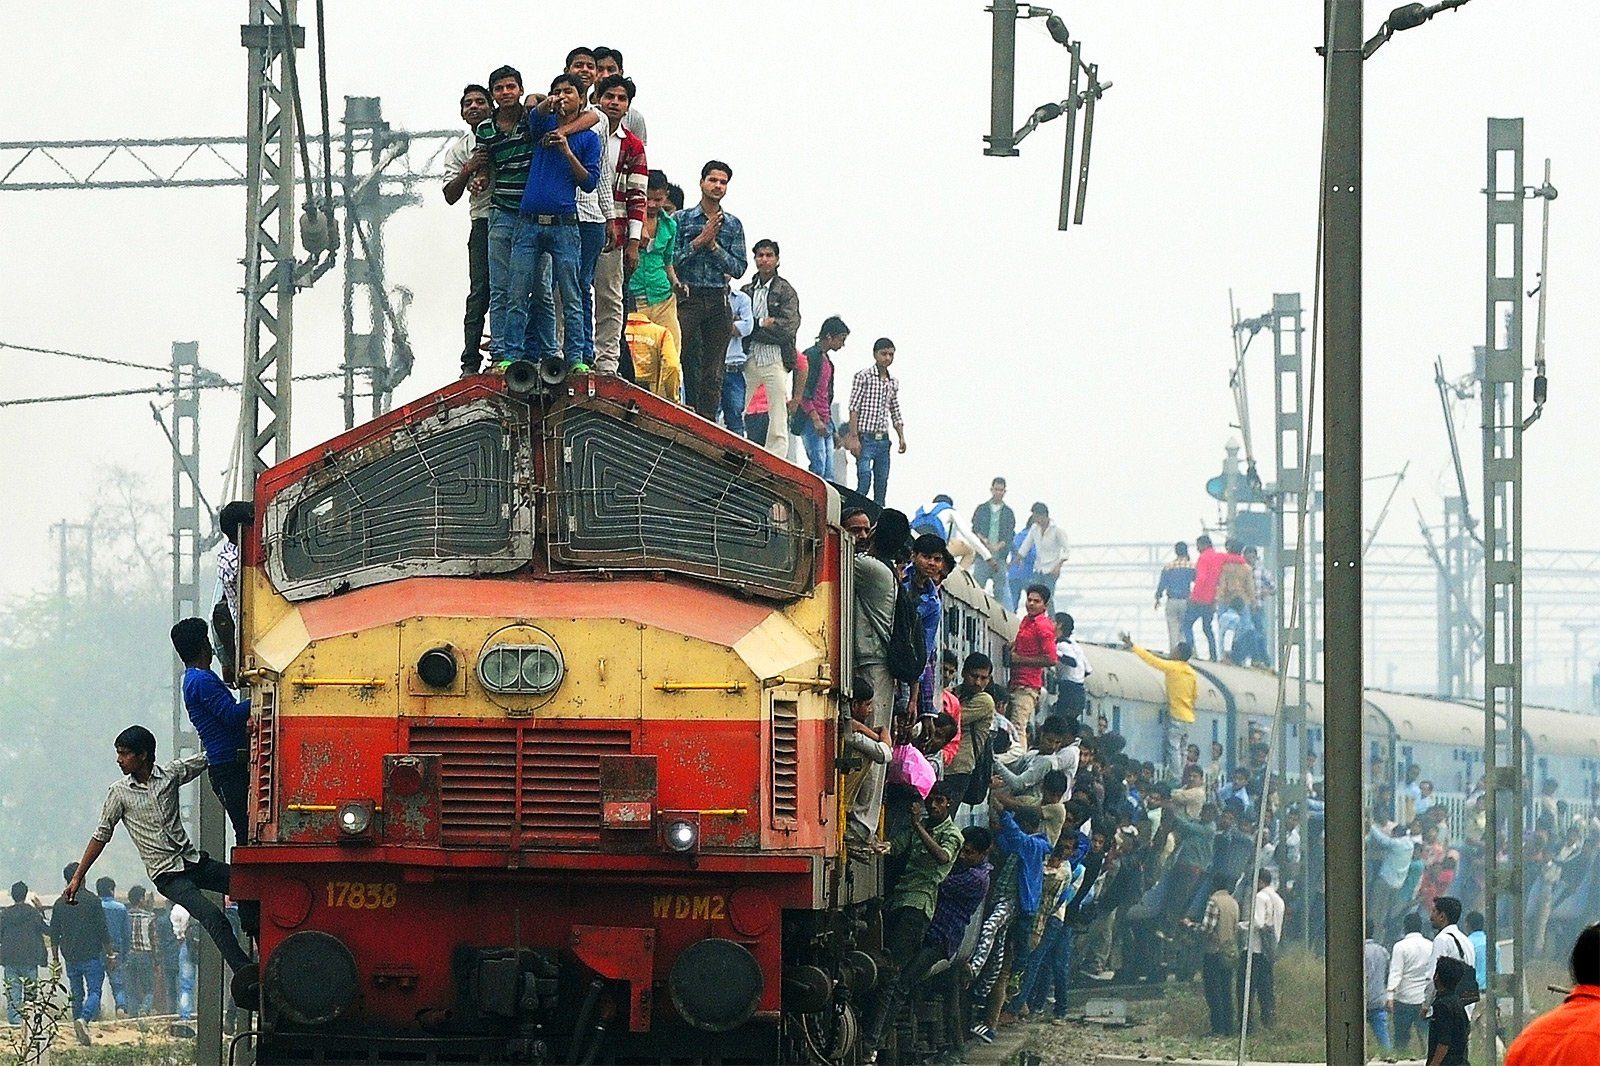 How to ride on the roof of a train in Mumbai